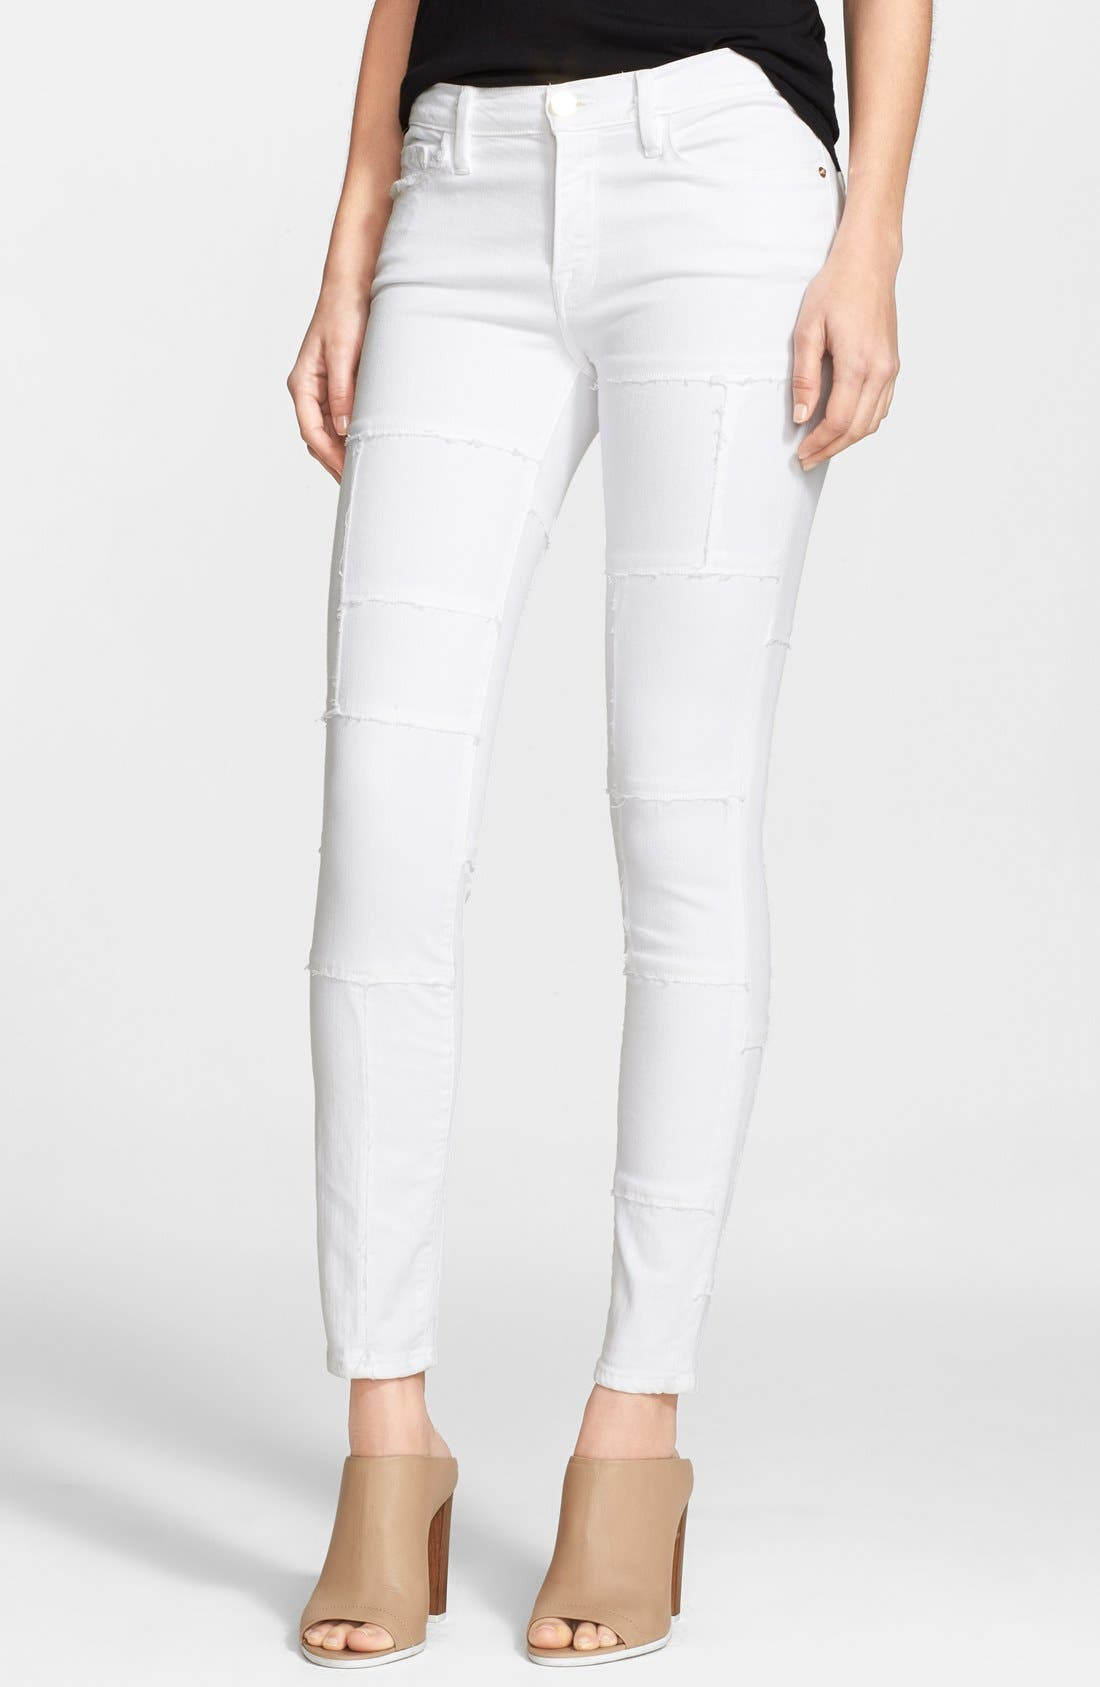 Alternate Image 1 Selected - Frame Denim 'Le Skinny Panel' Skinny Jeans (Blanc)